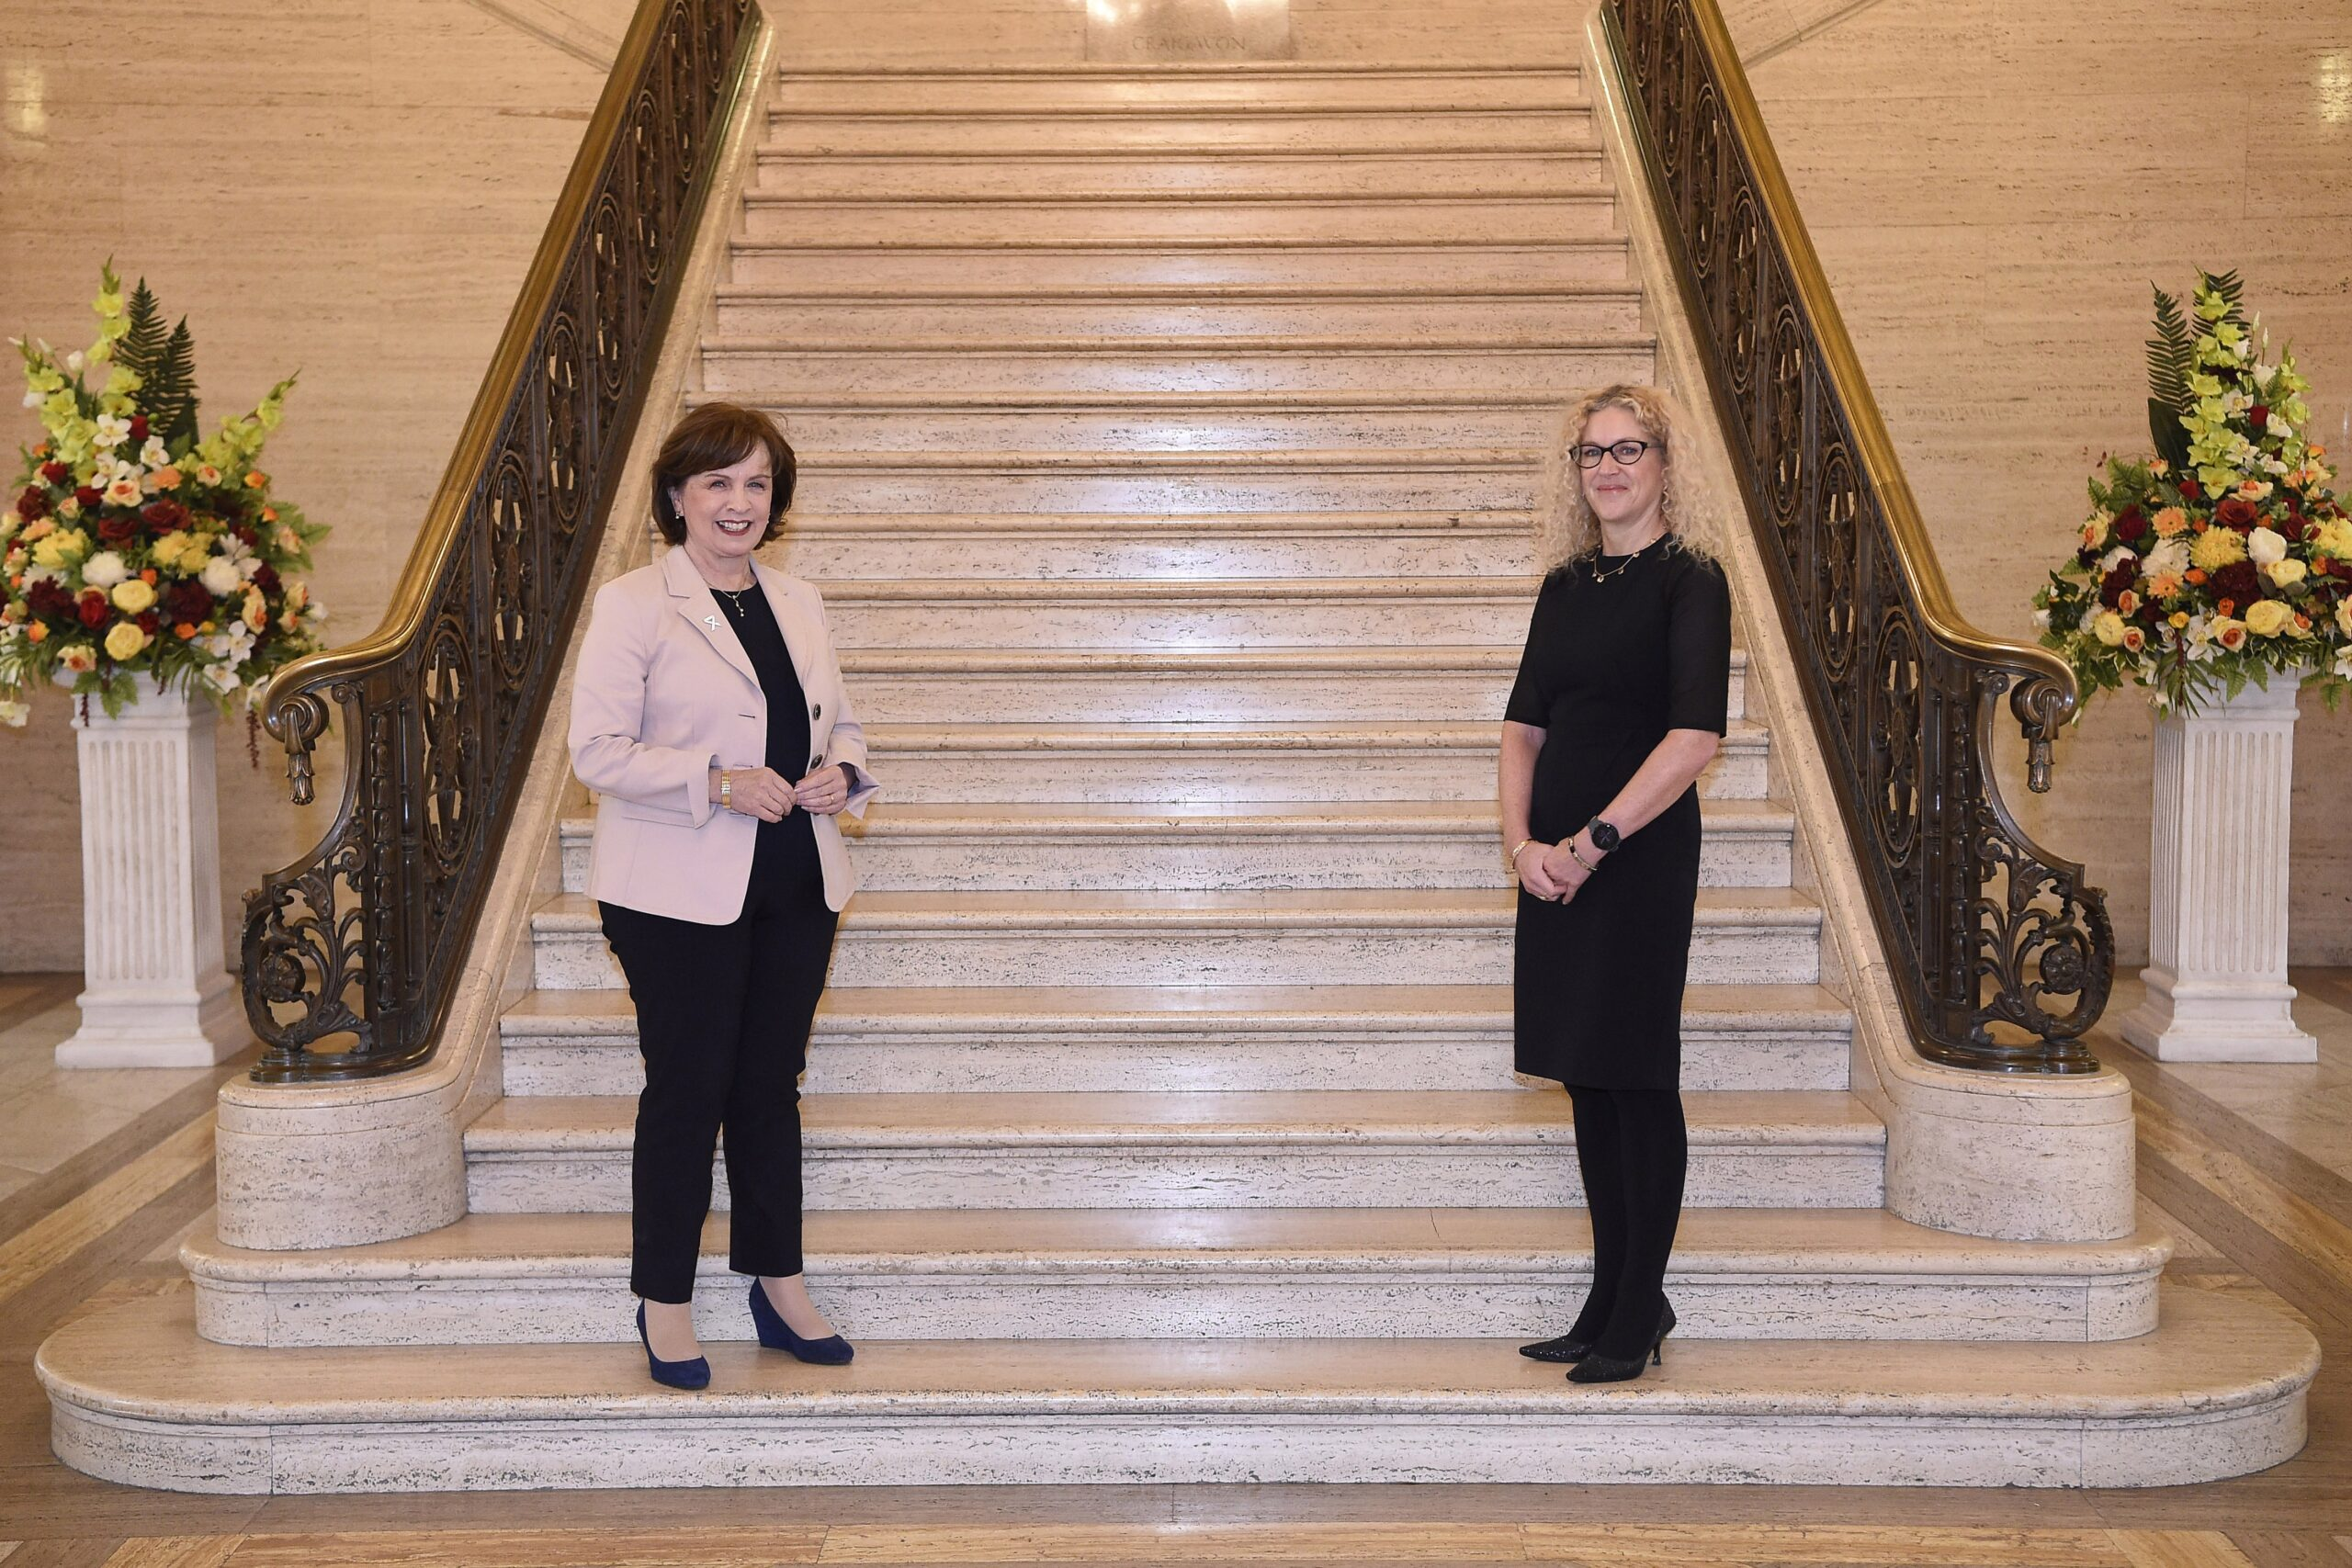 Digital-Futures-Initiatives-launched-for-Northern-Ireland-graduates-Newry-jobs-and-careers